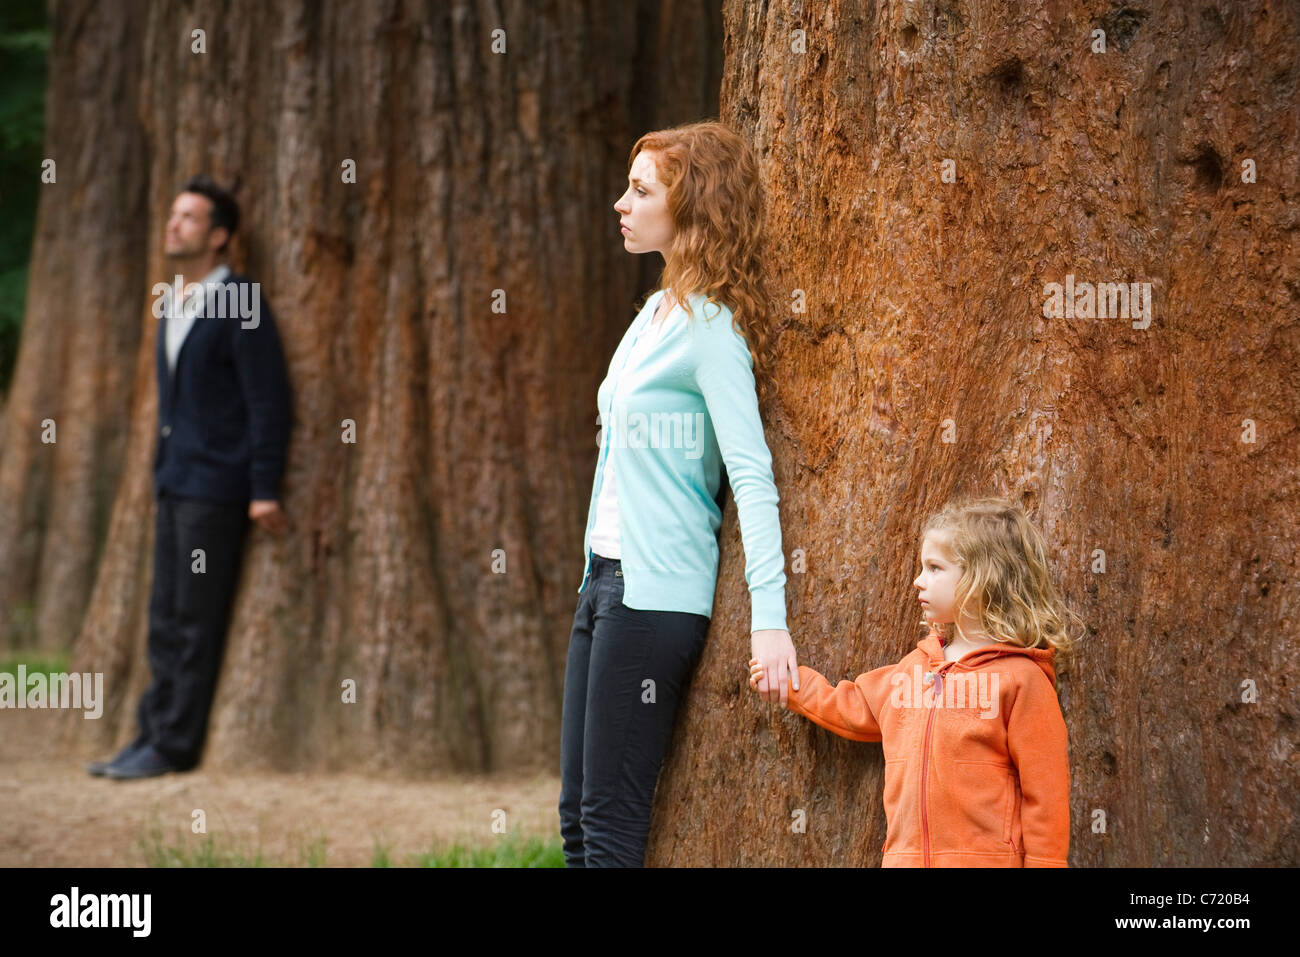 Mother and daughter leaning against tree, father standing separate in background - Stock Image